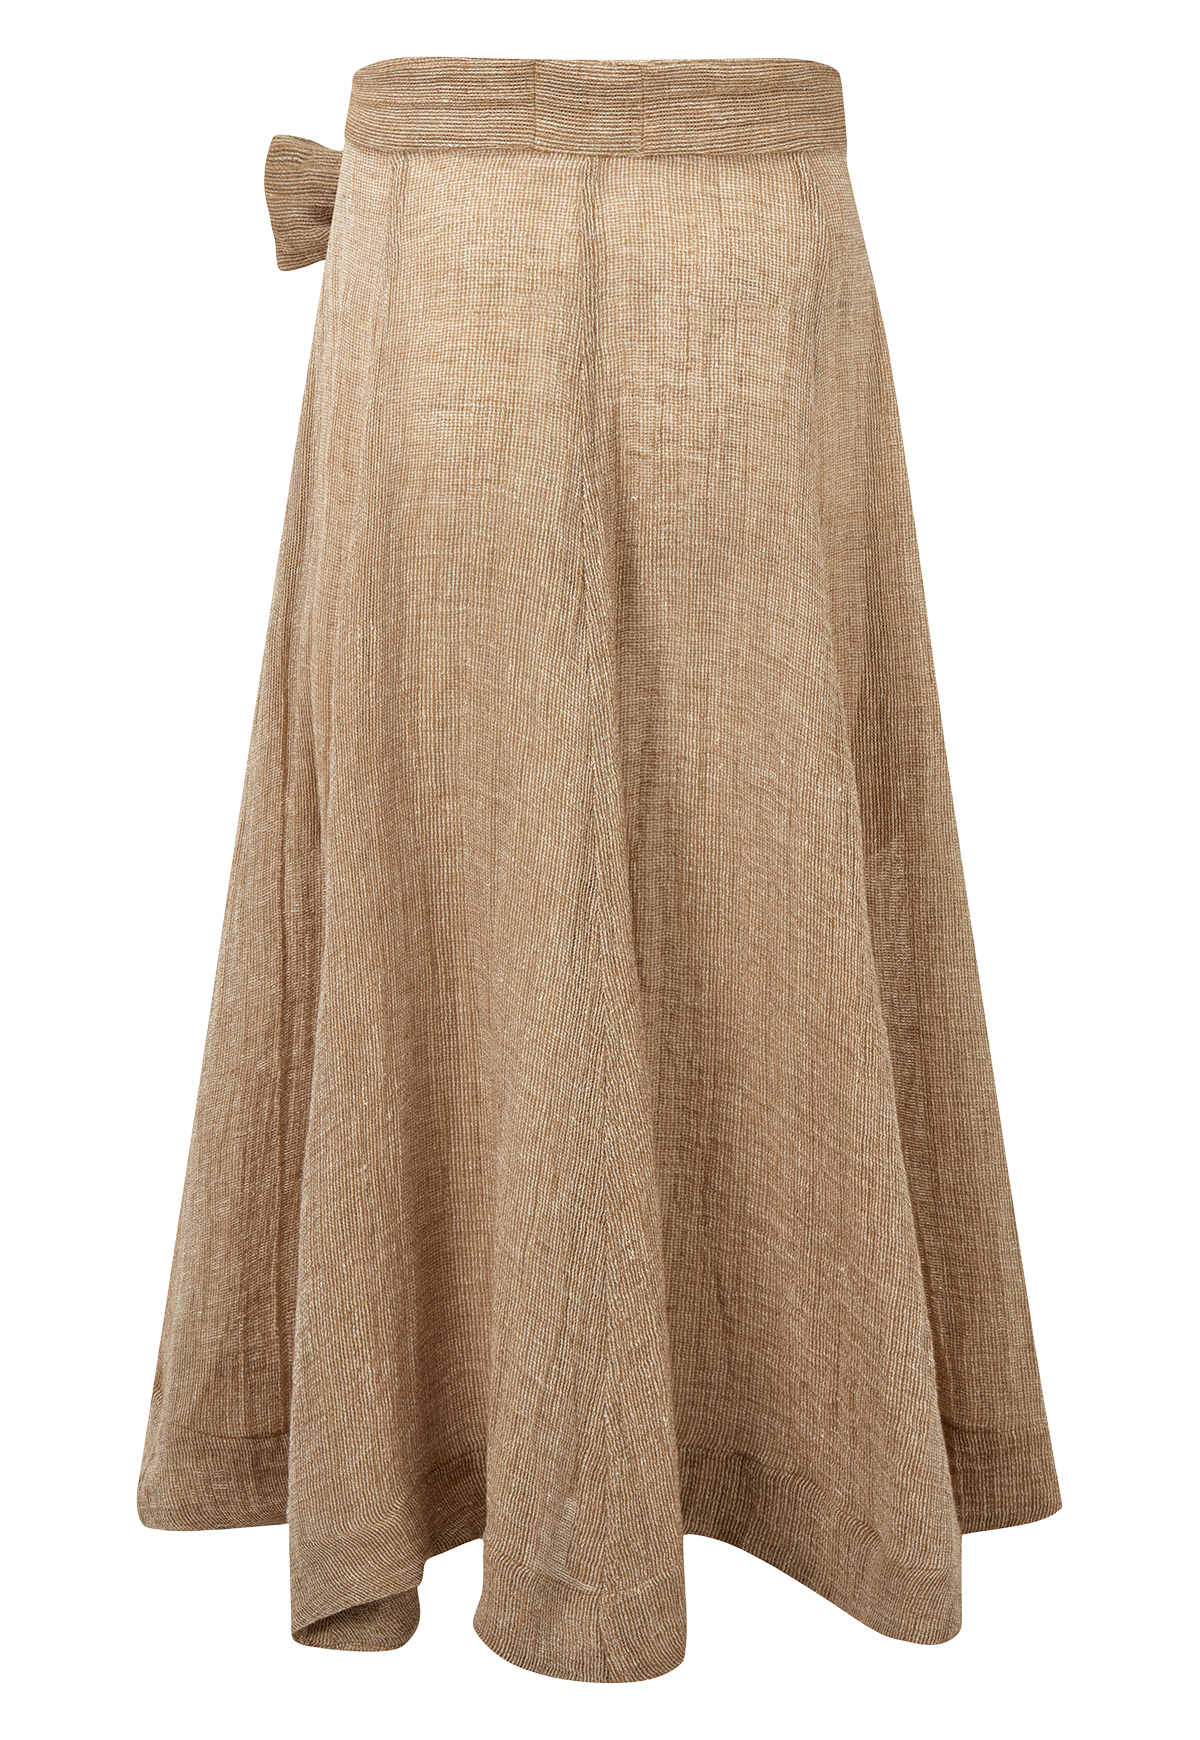 DIANA NATURAL CHIOS GAUZE SKIRT